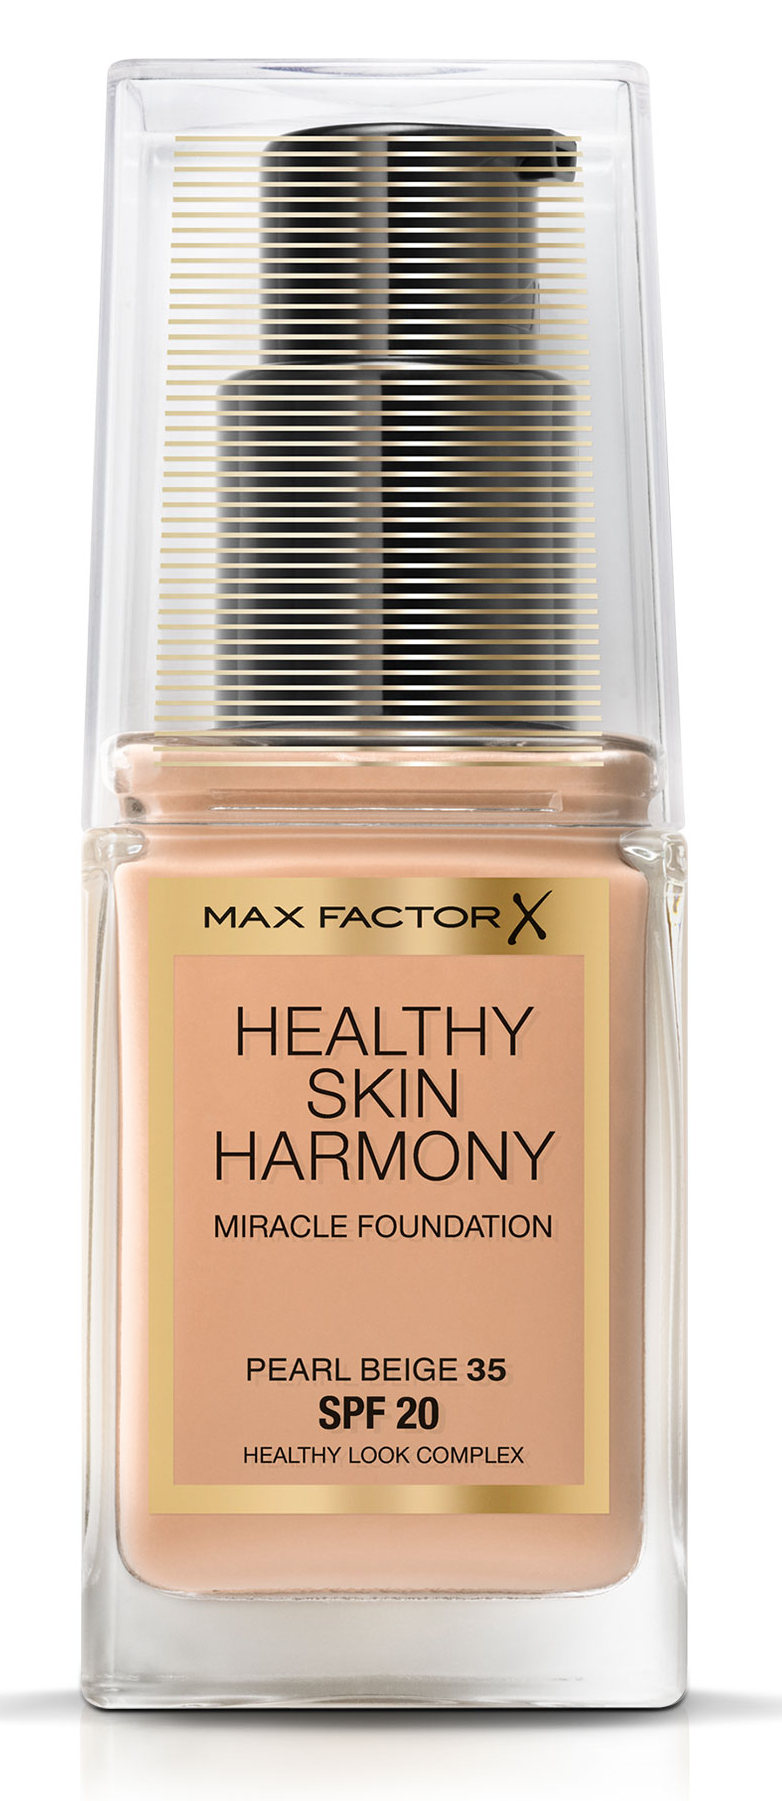 Max factor основа тональная 35 / healthy skin harmony miracle foundation pearl beige